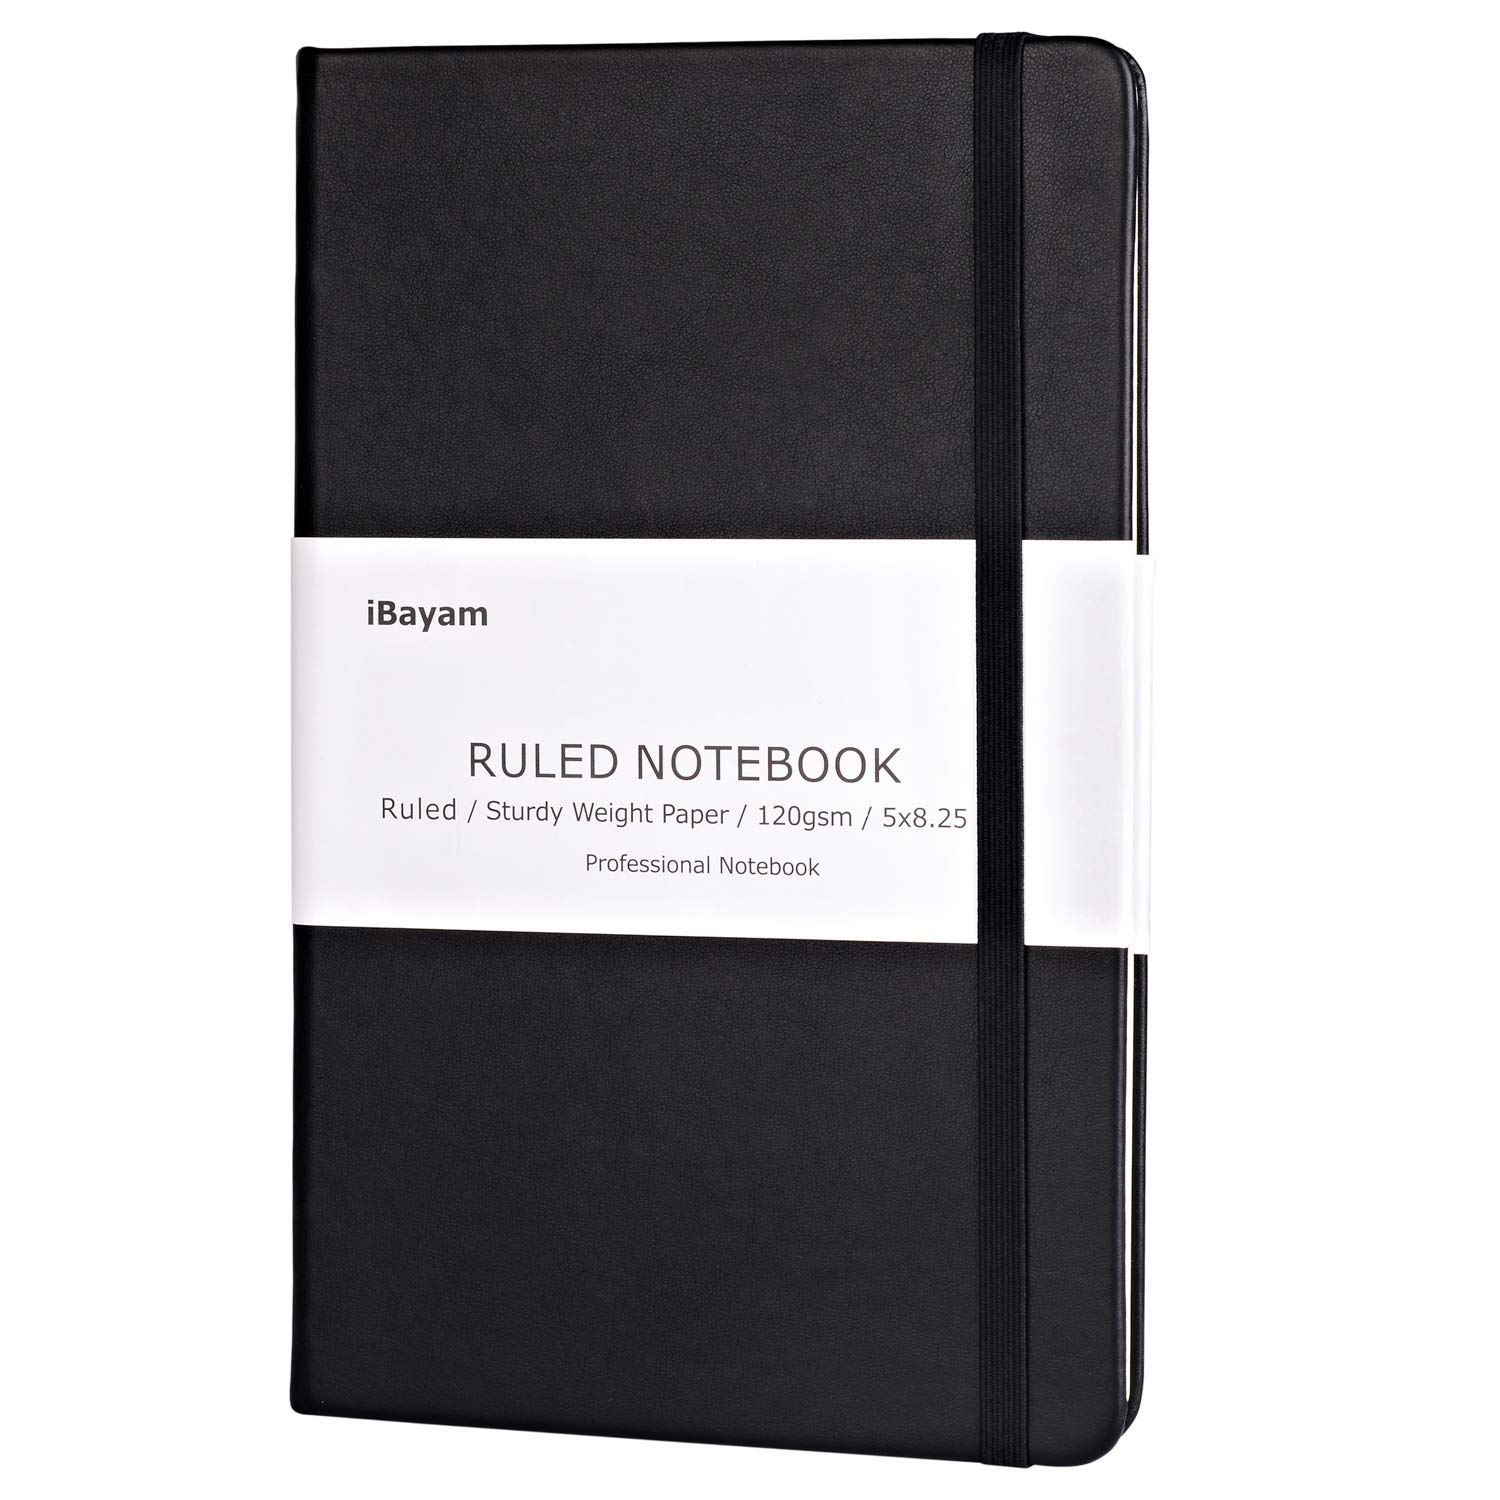 Dot Grid Hard Cover Notebook Journal, 120gsm Premium Thick Paper with Fine Inner Pocket, A5 Size(5'x 8.25'), Classic Black Smooth Faux Leather for School & Office Supplies (Dotted) A5 Size(5x 8.25) iBayam 14349480